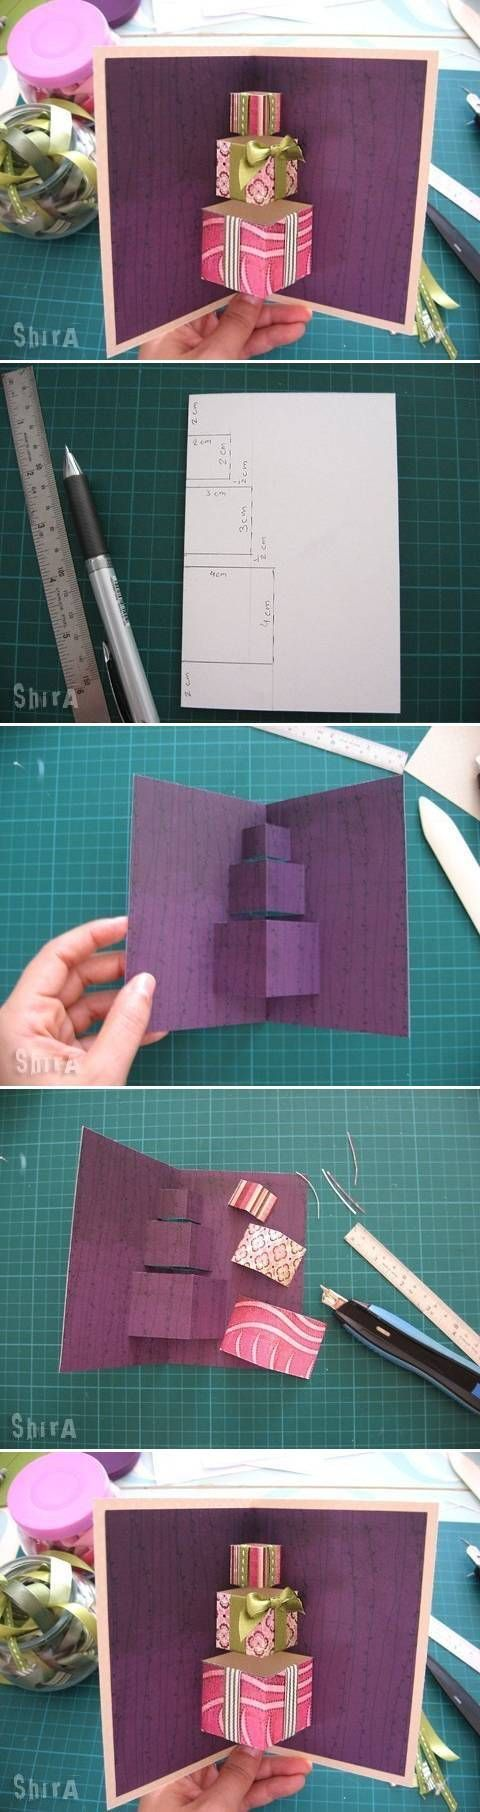 Cardmaking photo tutorial: pop-up card ... popular stack of blocks/presents format